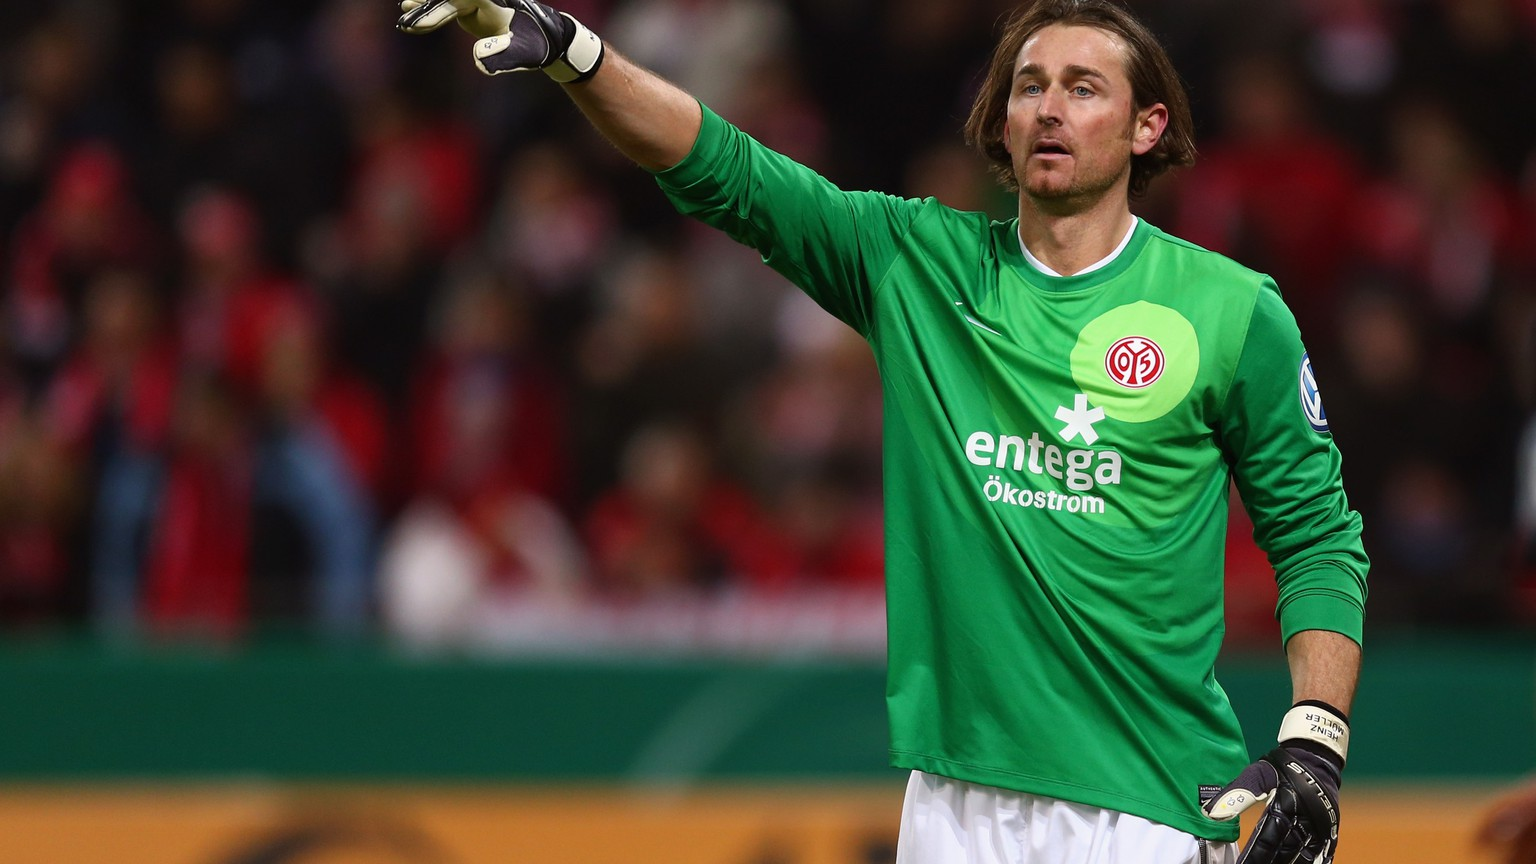 MAINZ, GERMANY - FEBRUARY 26: Goalkeeper Heinz Mueller of Mainz gestures during the DFB Cup Quarter Final match between FSV Mainz 05 and SC Freiburg at Coface Arena on February 26, 2013 in Mainz, Germany.  (Photo by Alex Grimm/Bongarts/Getty Images)